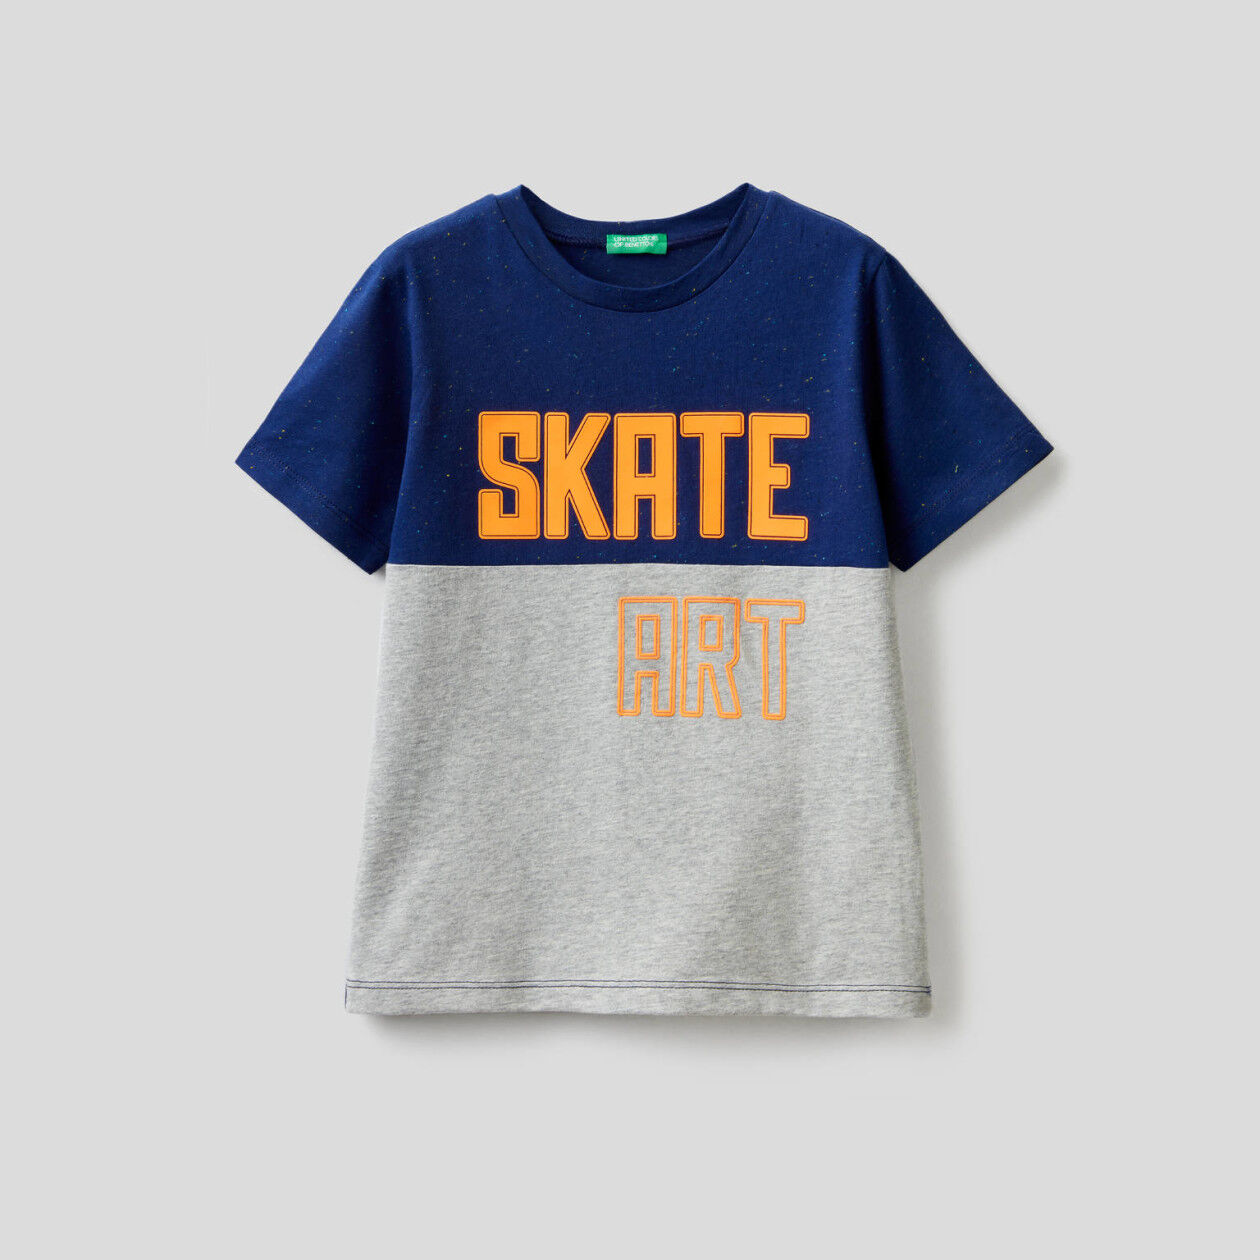 Two-tone t-shirt with print